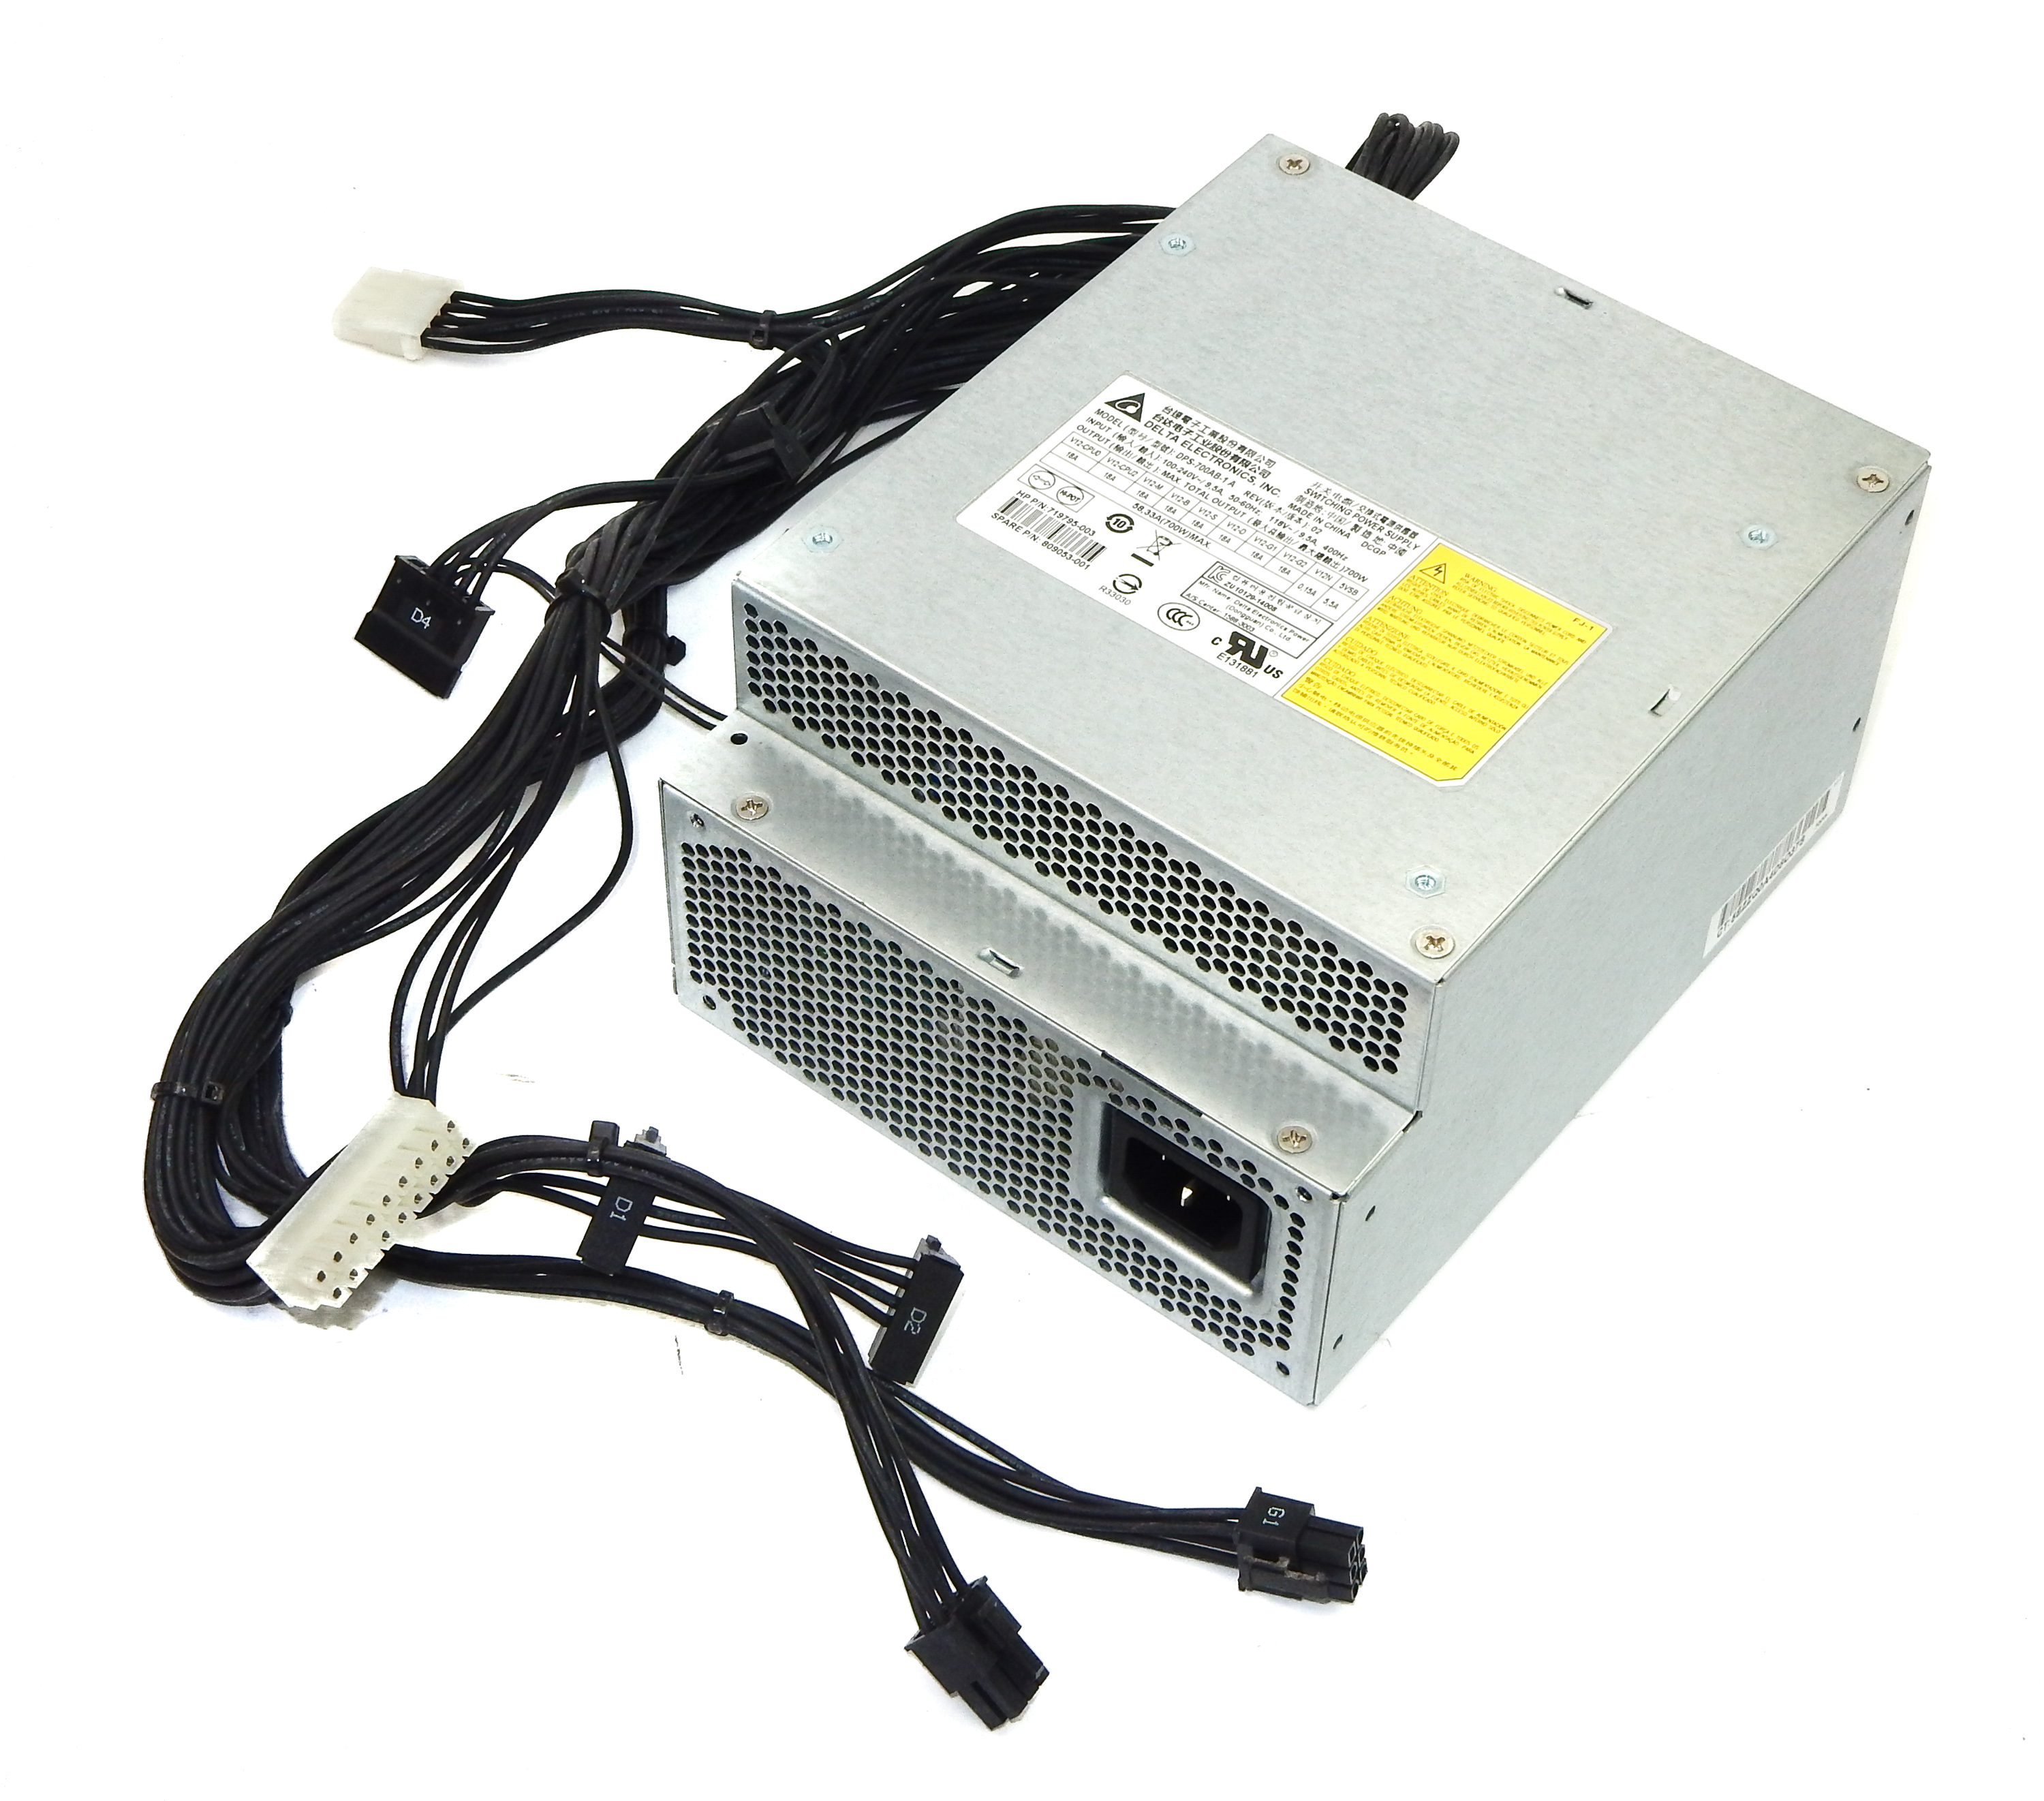 HP 809053-001 Z440 Workstation 700W Power Supply PSU Delta DPS-700AB-1